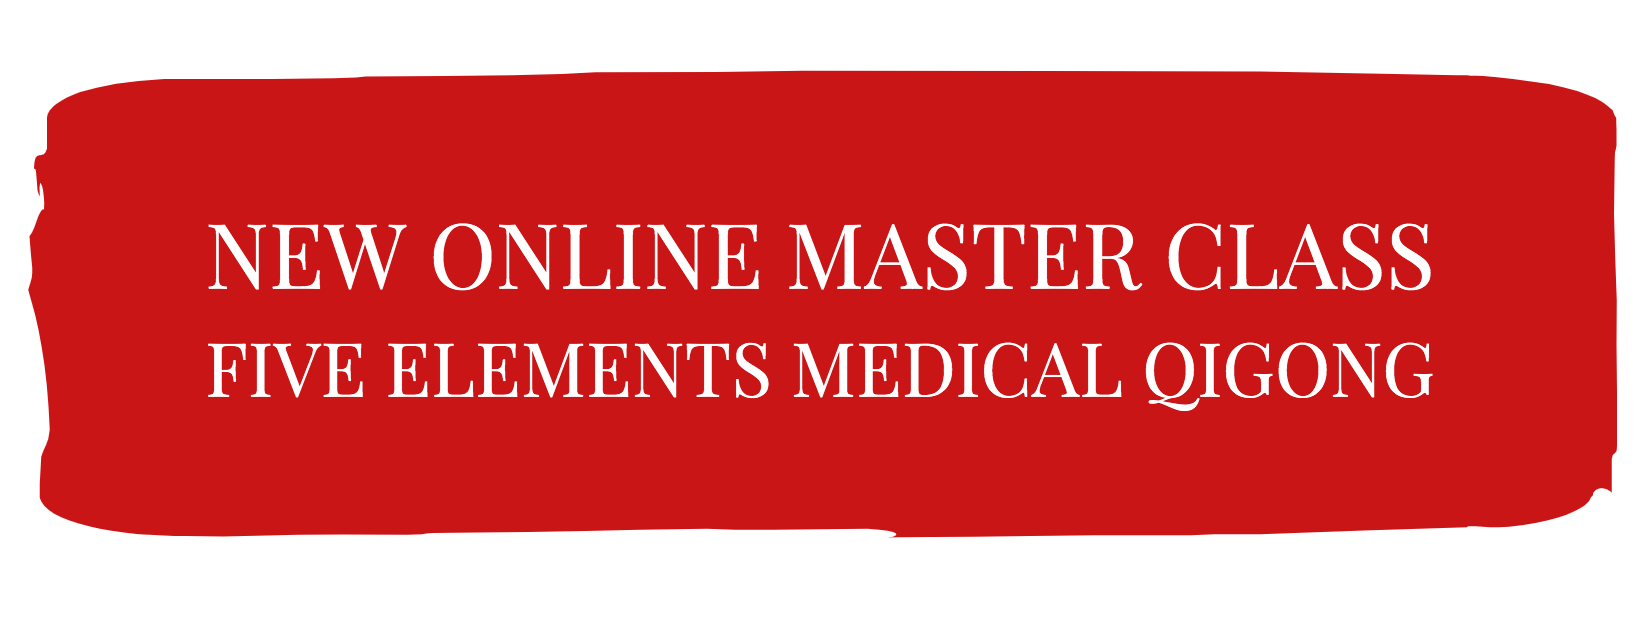 We are thrilled to announce Five Elements Medical Qigong